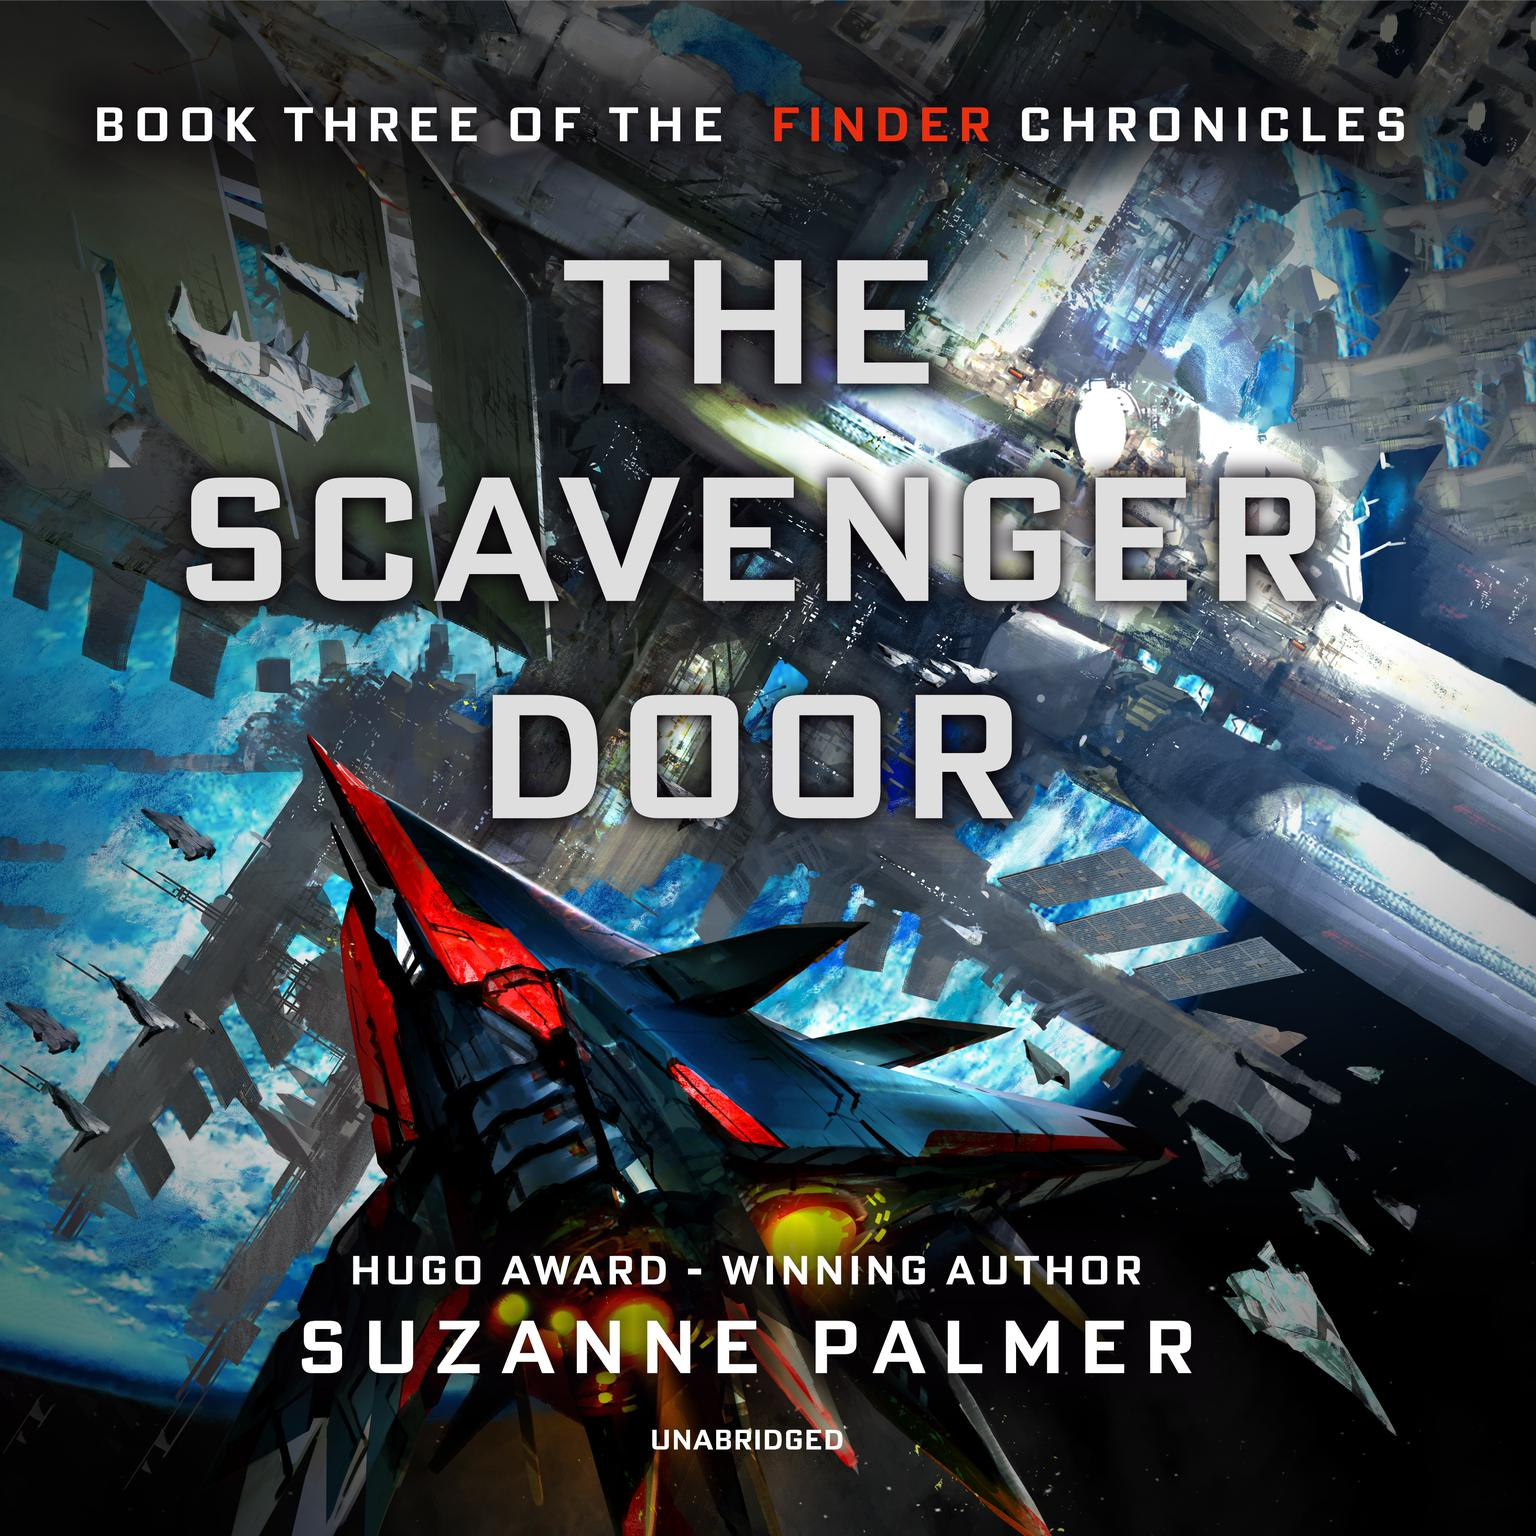 Untitled third book in series Audiobook, by Suzanne Palmer